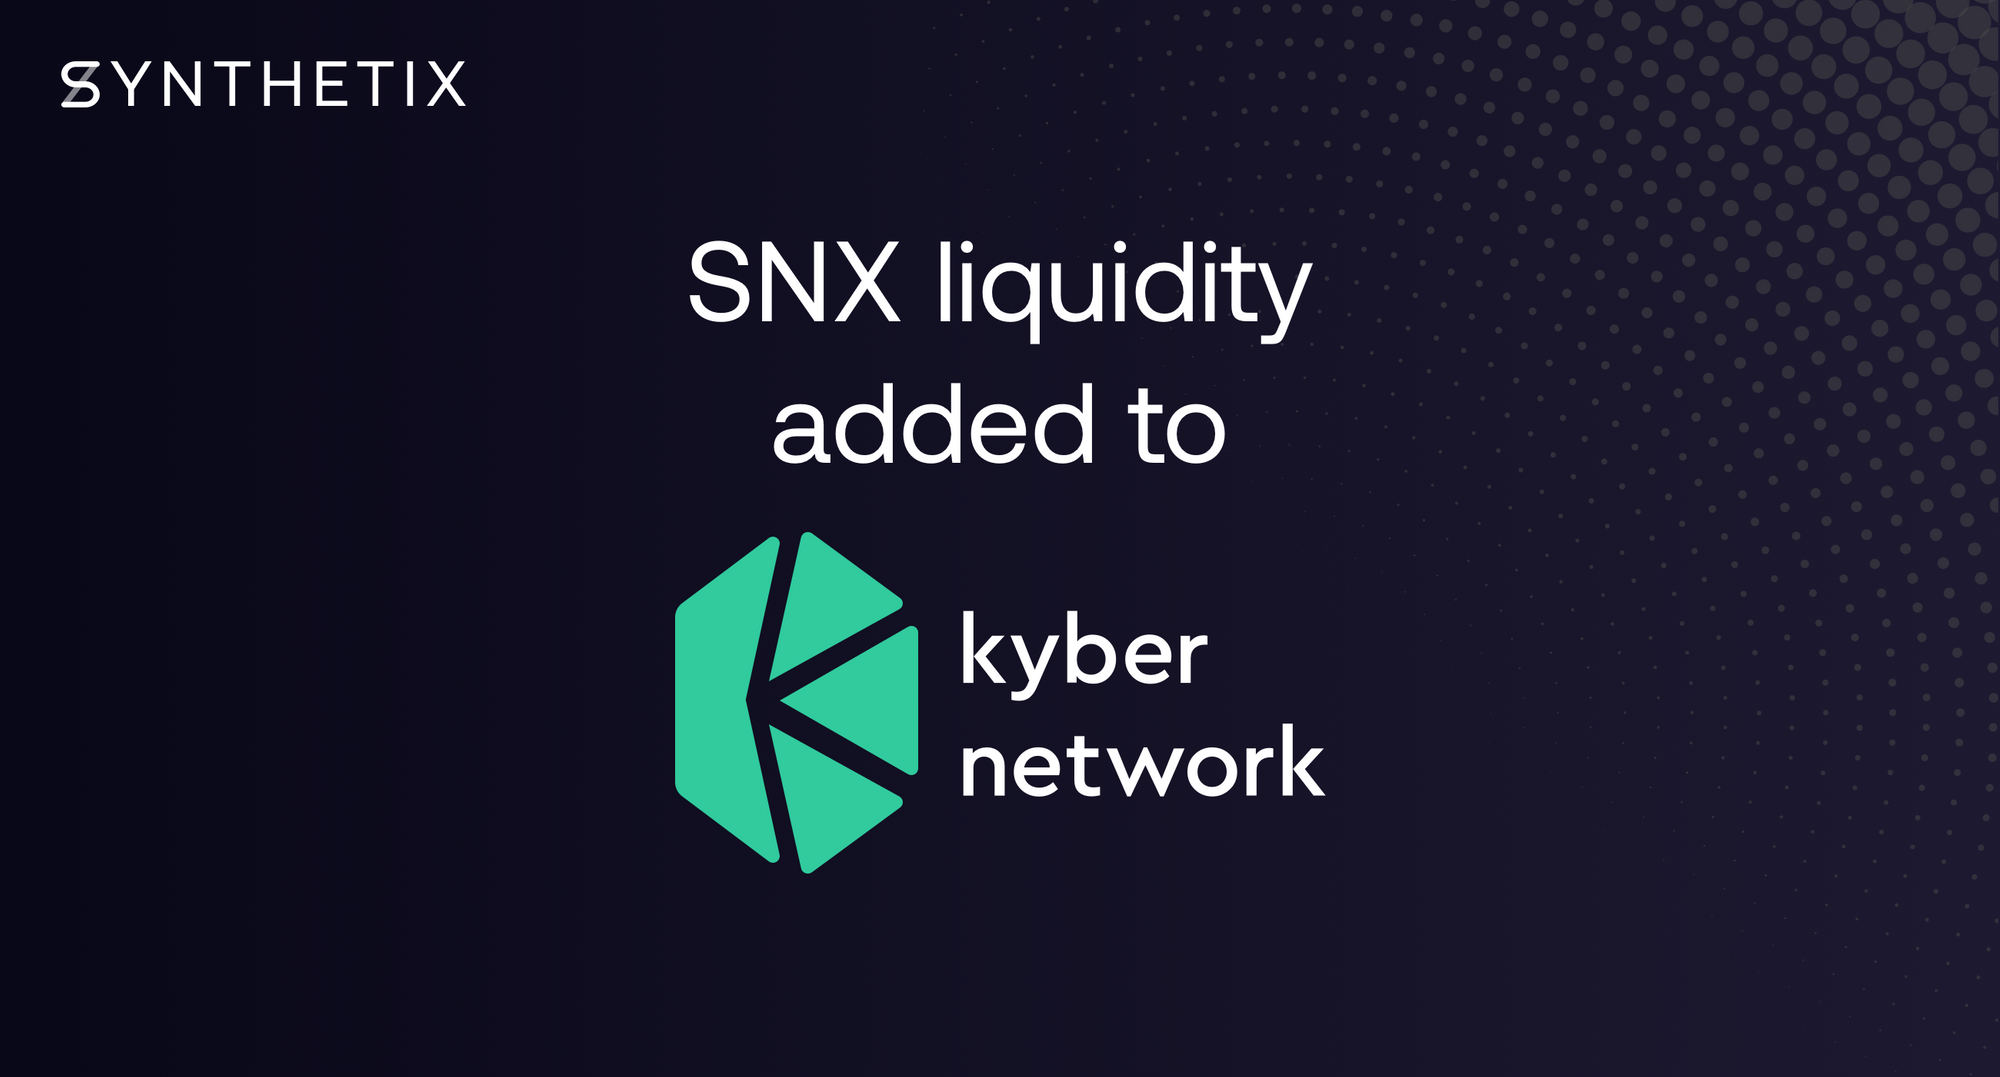 SNX liquidity has been added to KyberSwap!